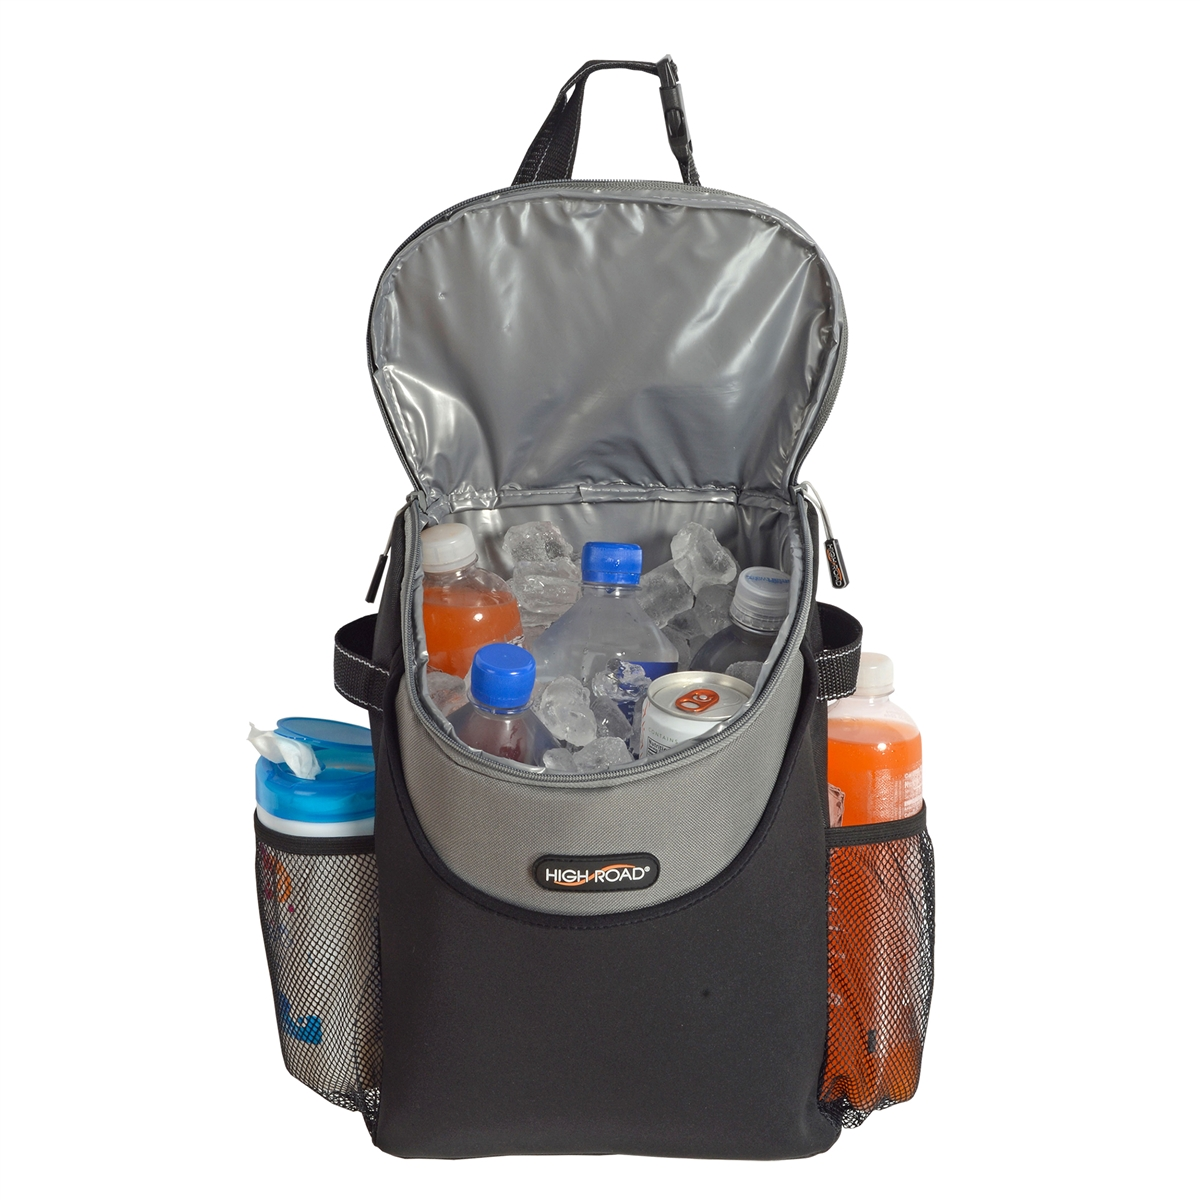 High Road Snackstash Hanging Car Seat Cooler Organizer For Front Or Bag Price 1599